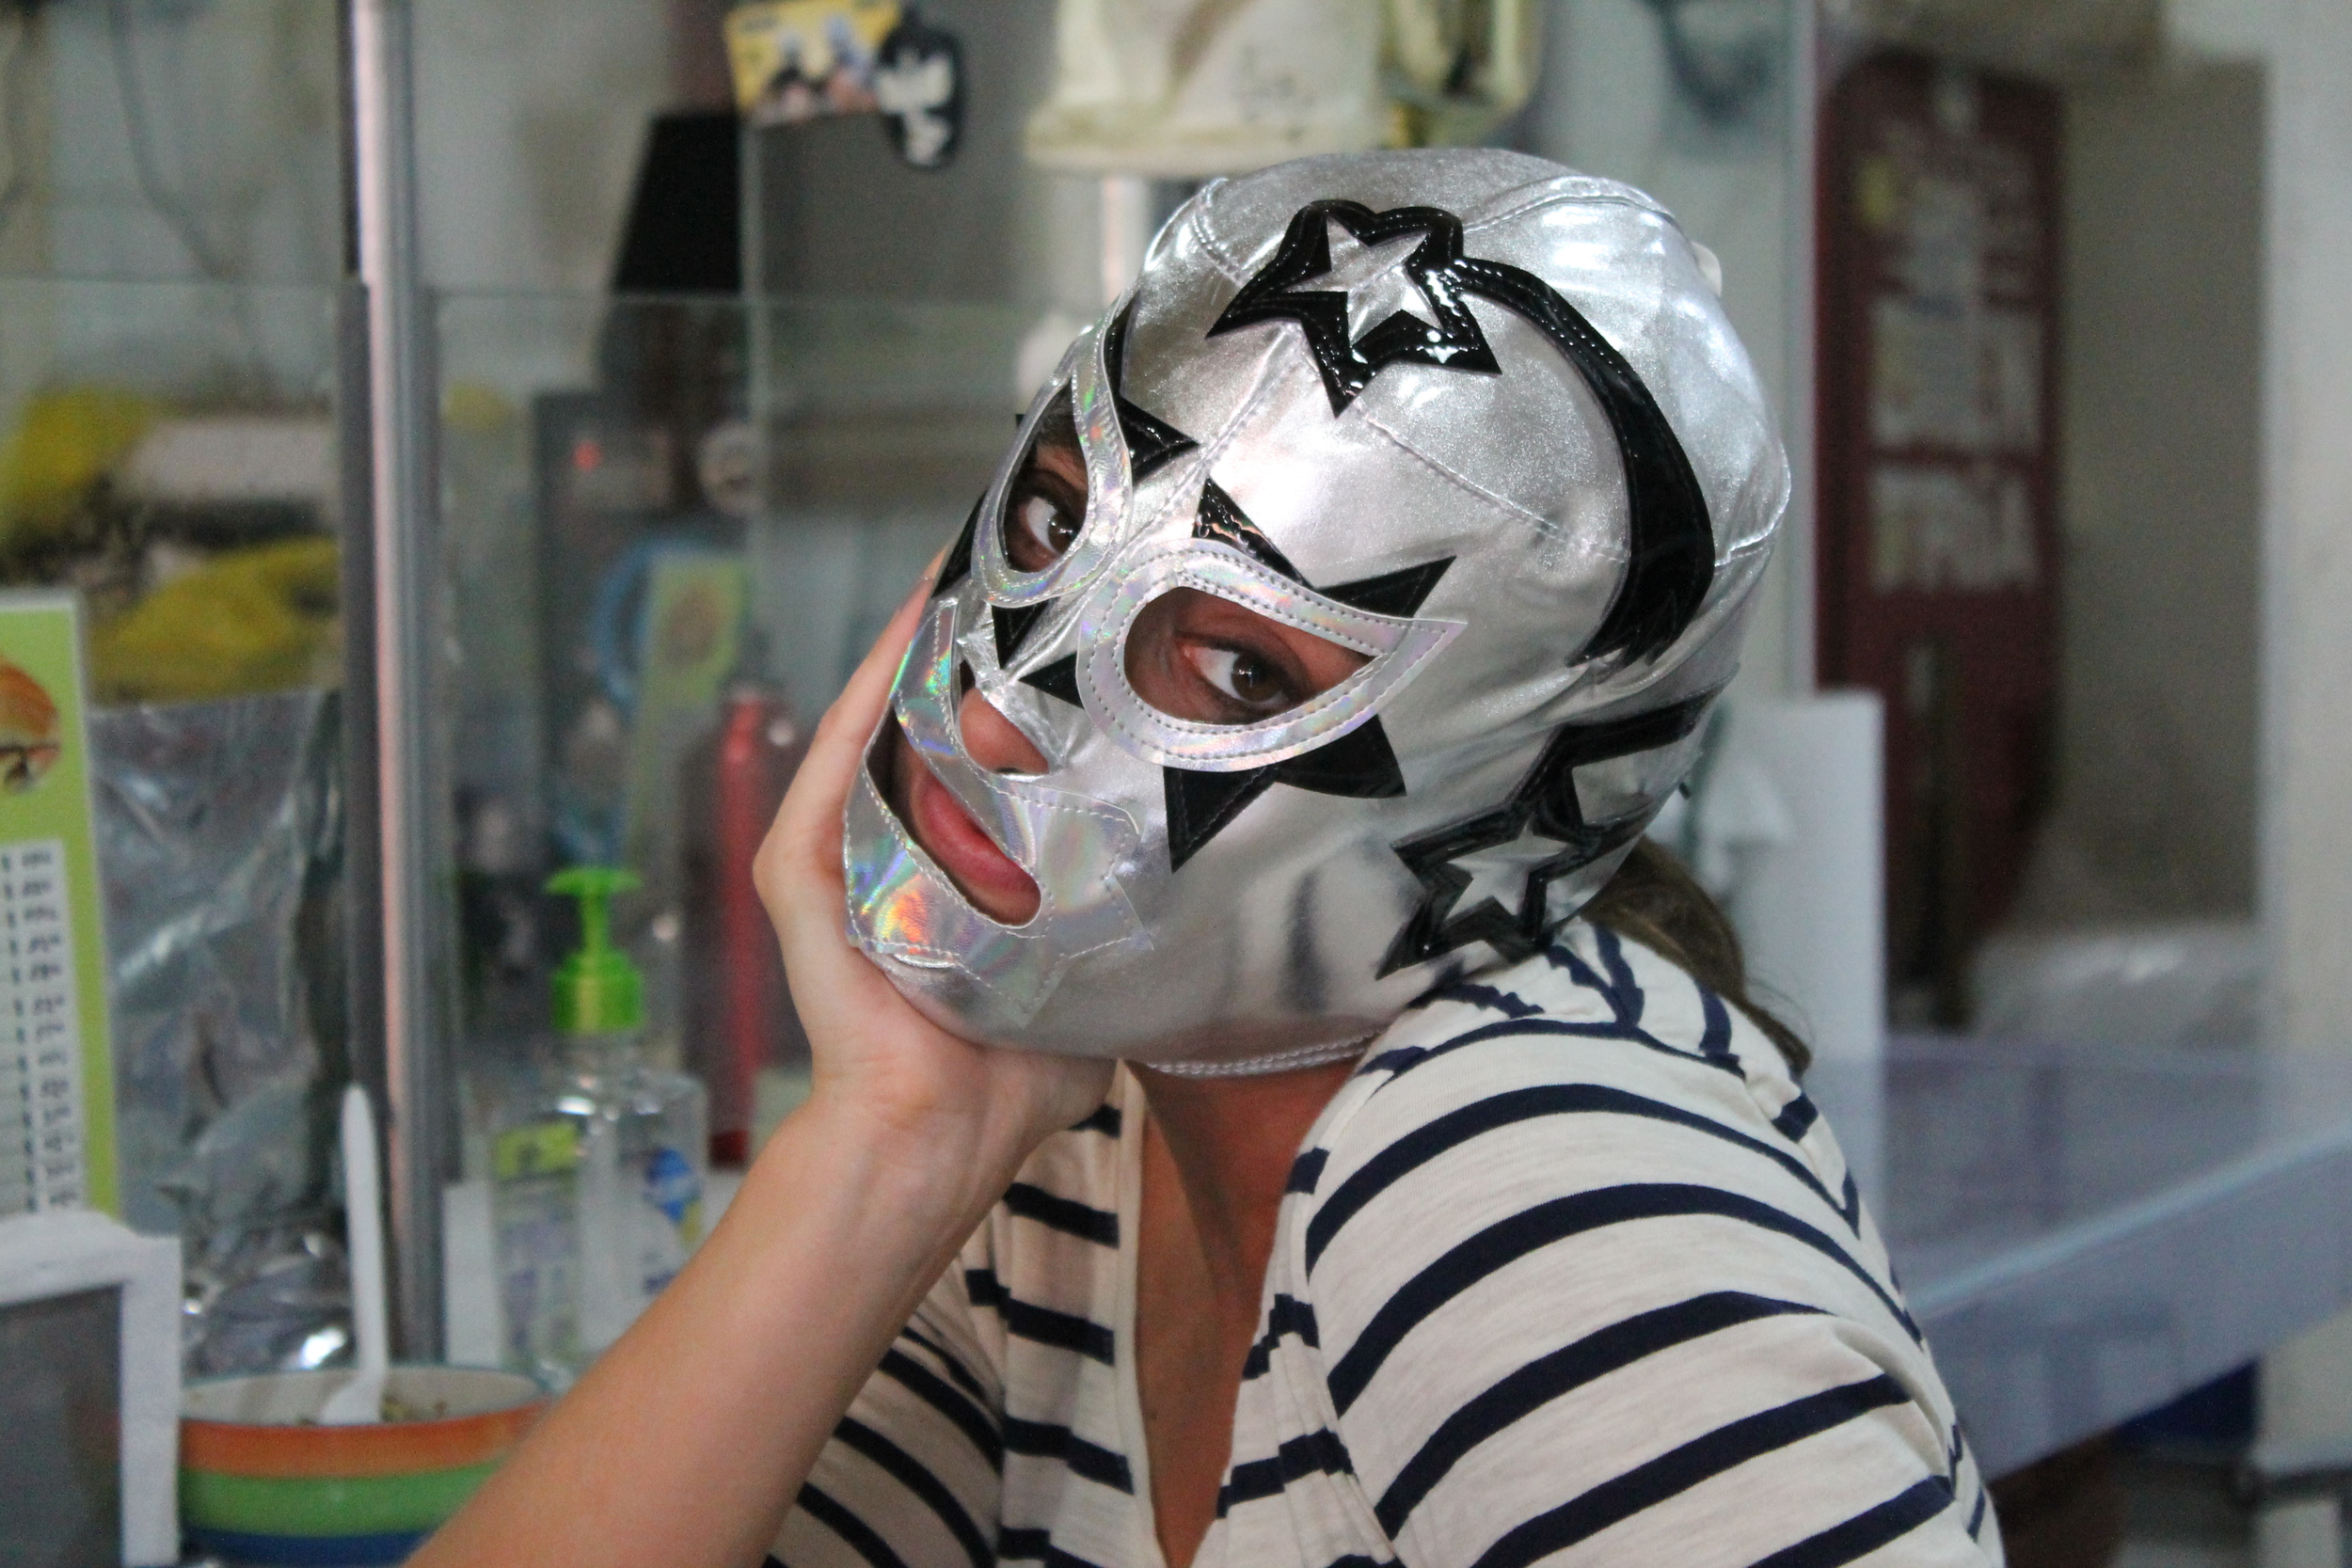 Luchadores, Mexican wrestlers, are known for their masked theatrics